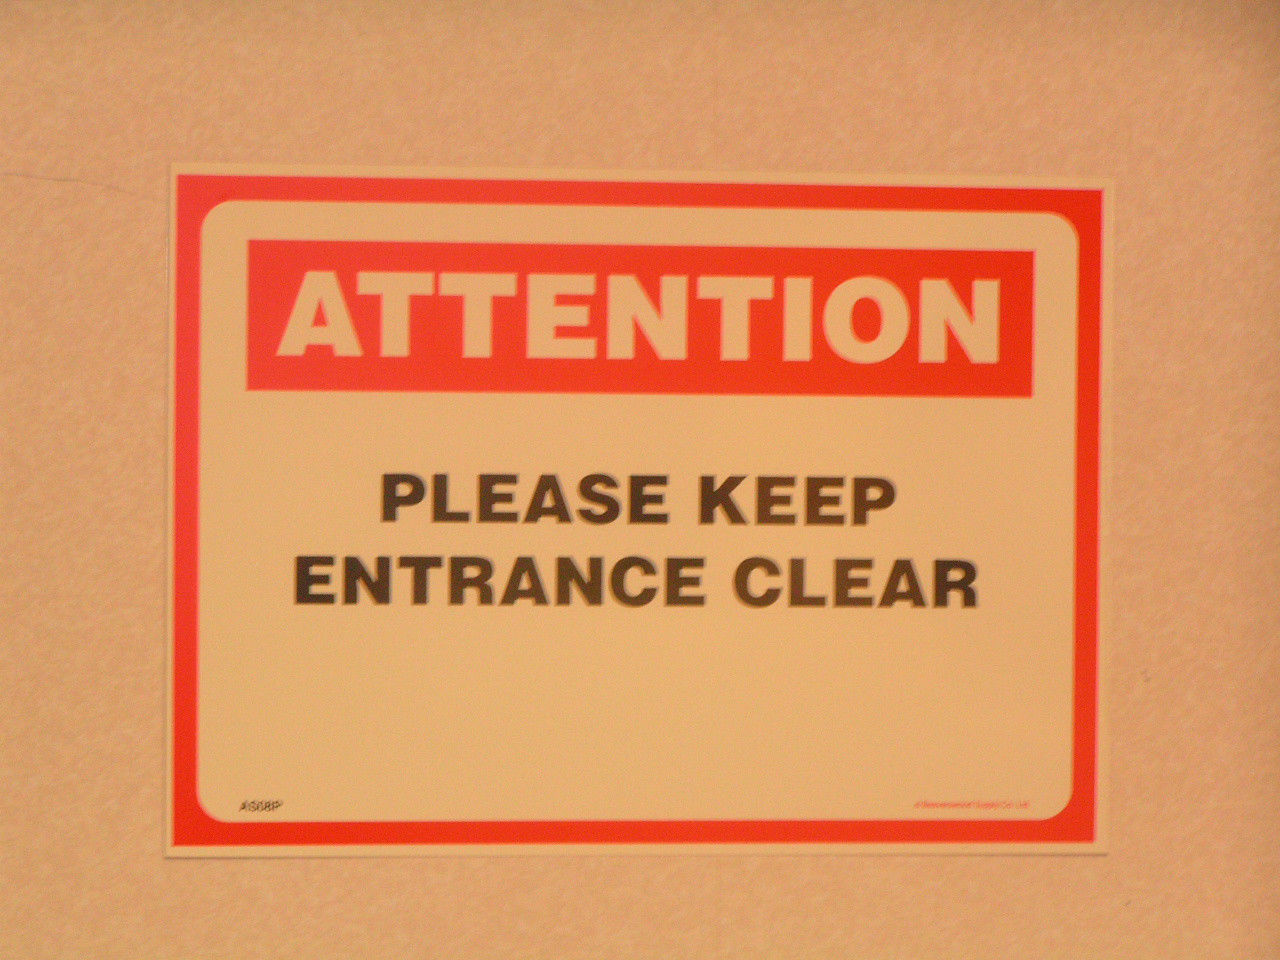 Attention Warning Safety Please Keep Entrance Clear 254 x 356mm, Rigid PVC Sign